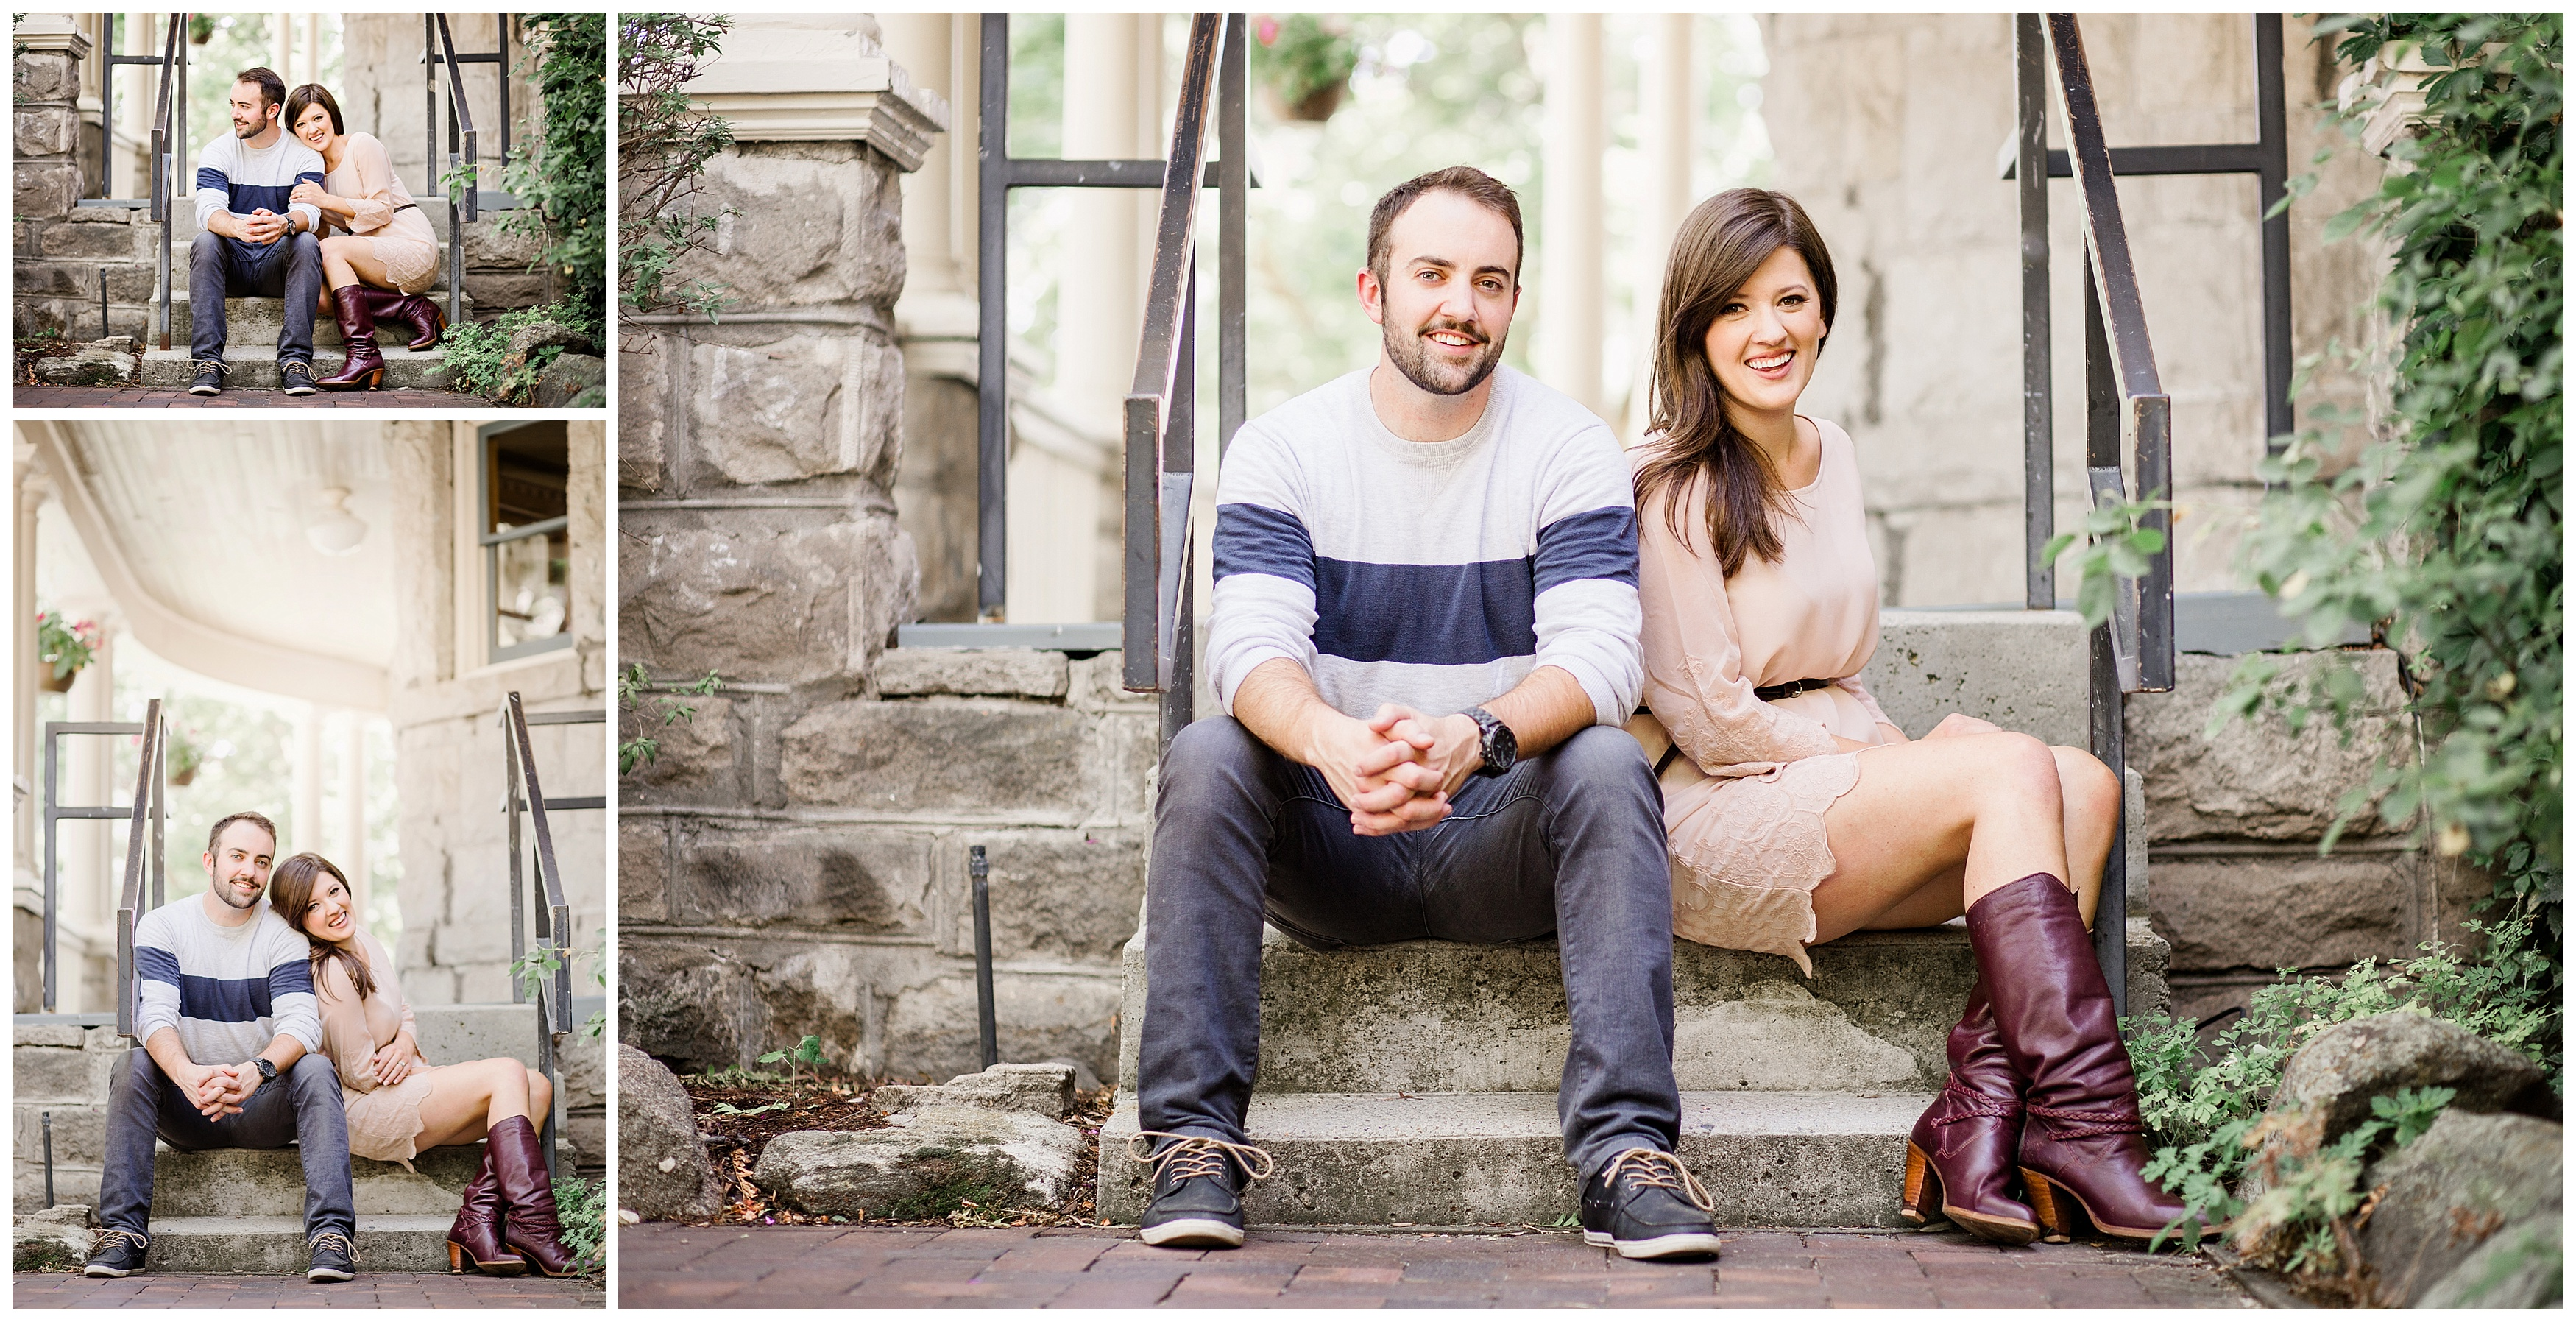 Austin and Katie Engaged | Boise, Idaho | Engagement Photographer